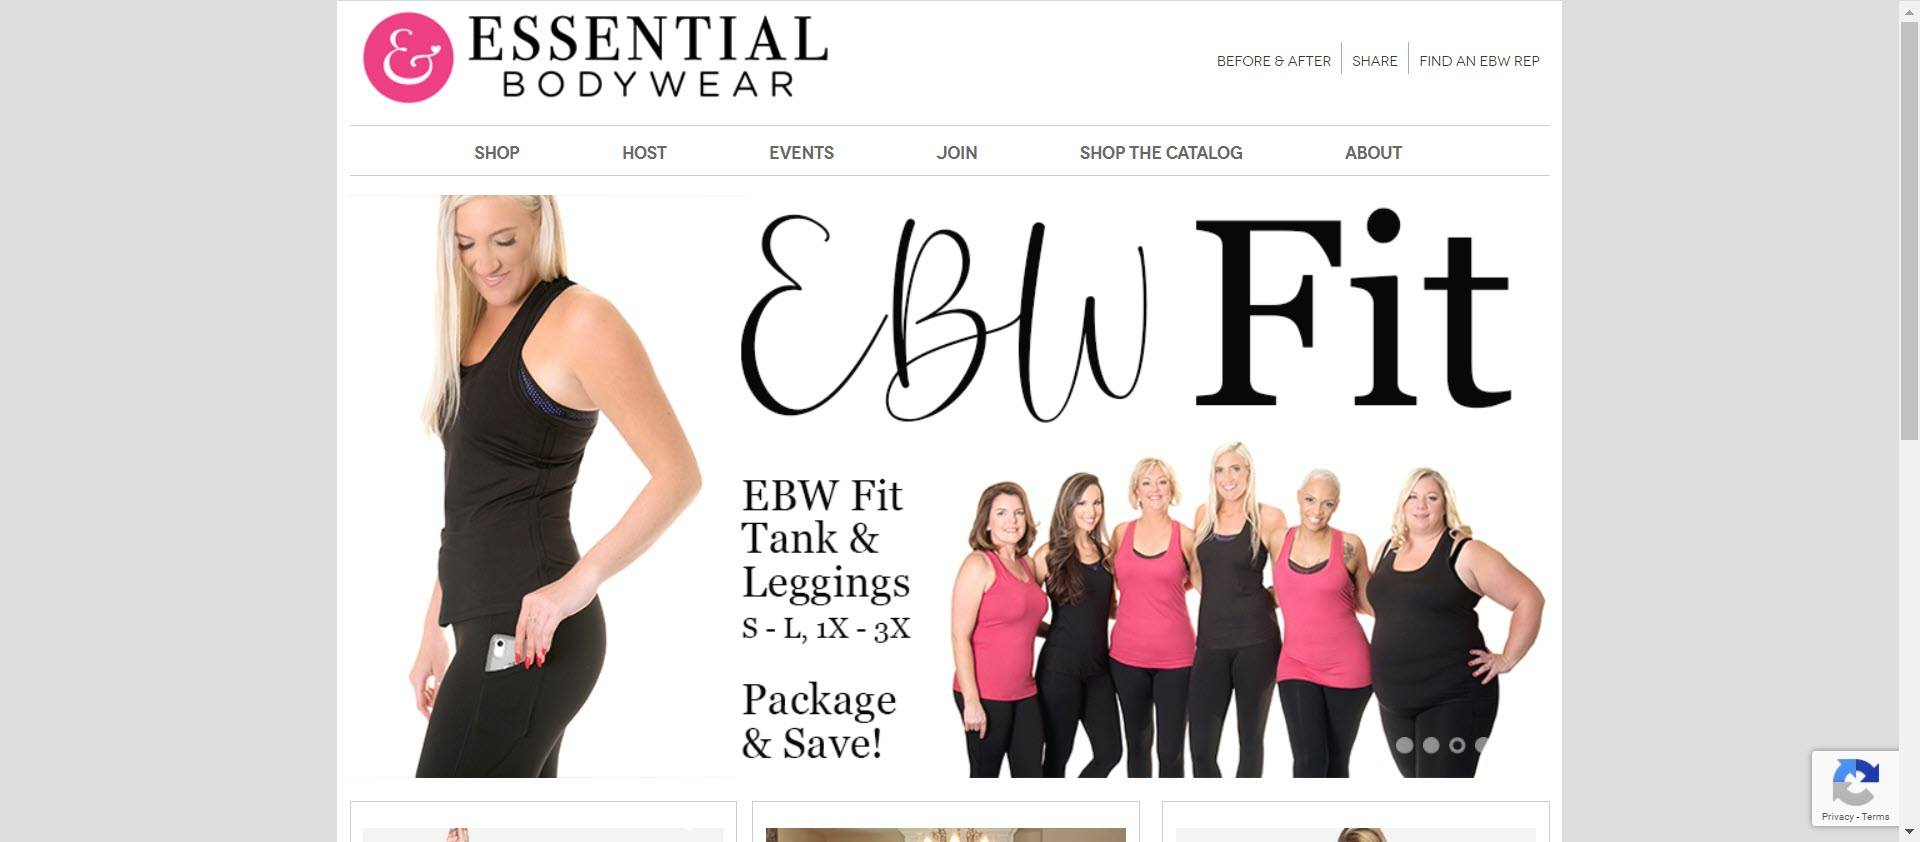 Essential Bodywear - Home